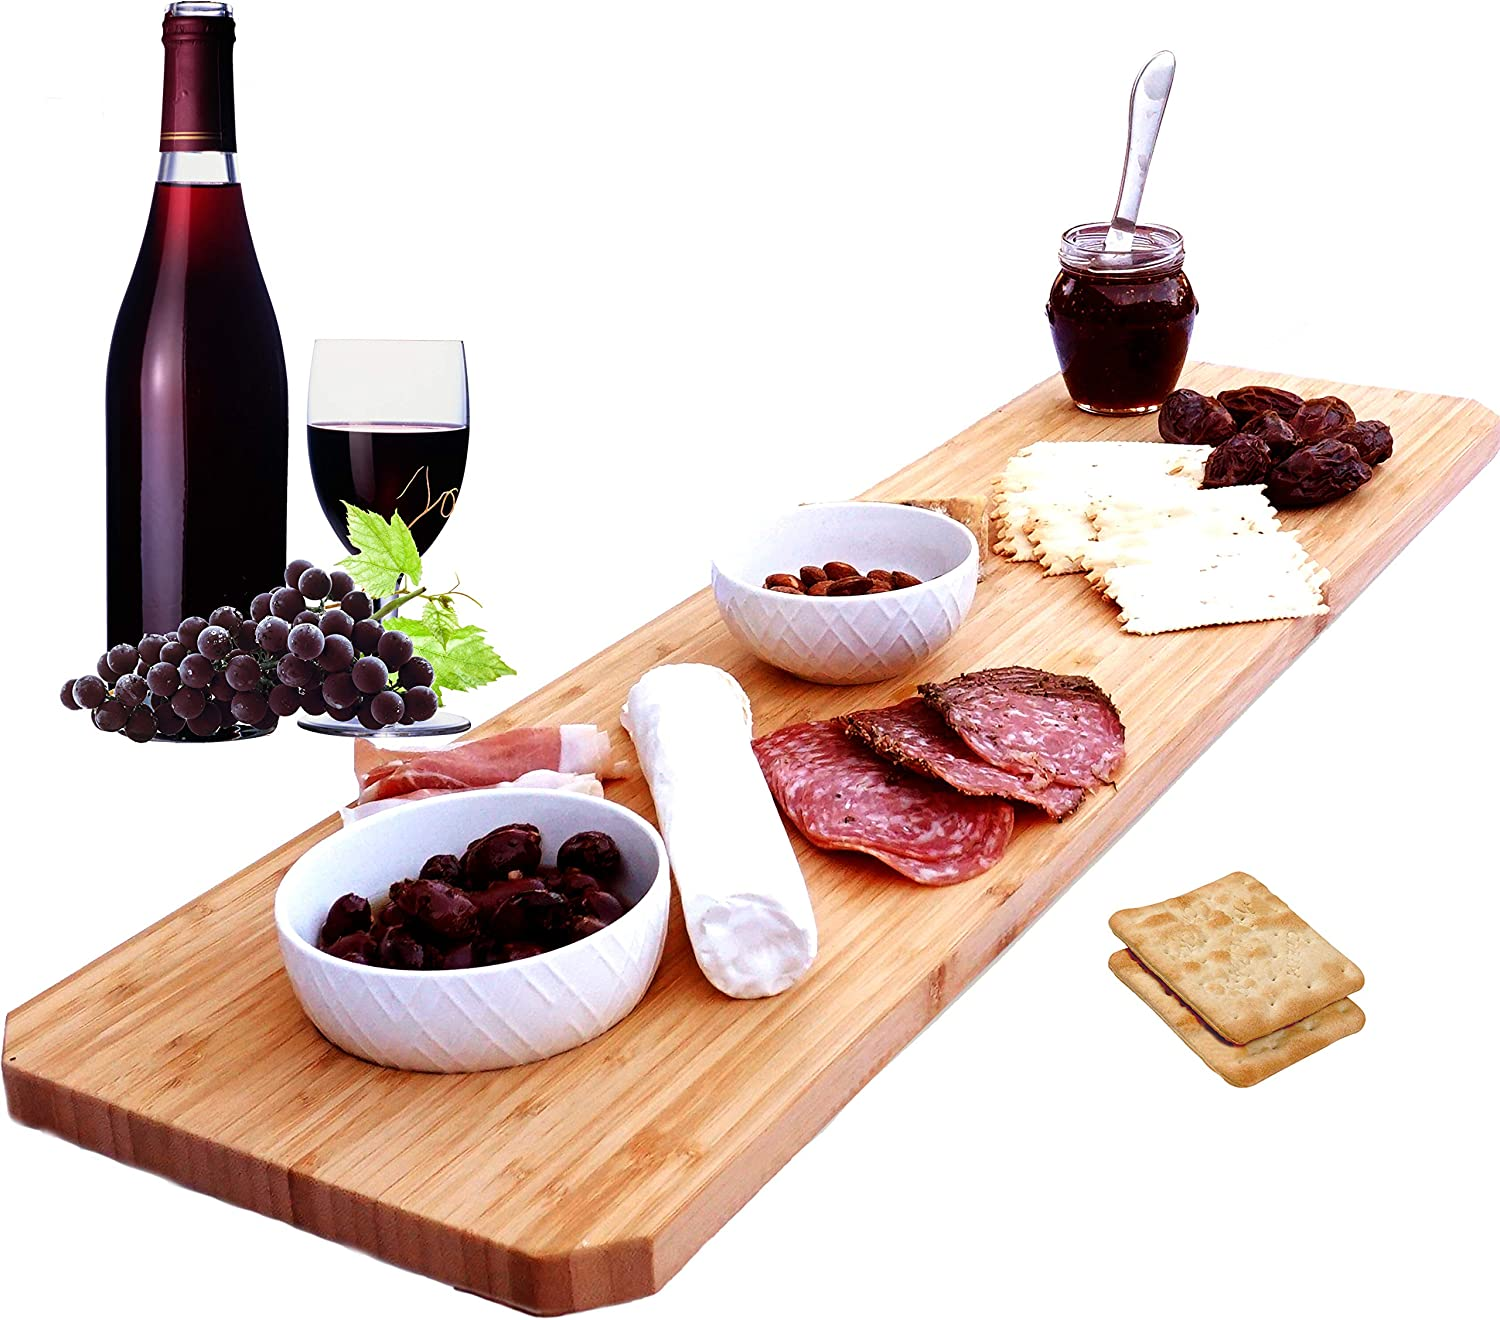 Bamboo Home Life Extra Large Cheese Board Platter - 30 Inch Long Charcuterie Board Includes Hole for Dips or to Hang on Wall - Great for Meats, Cheeses, Appetizers At Parties, Gifts - 30 X 8 Inch